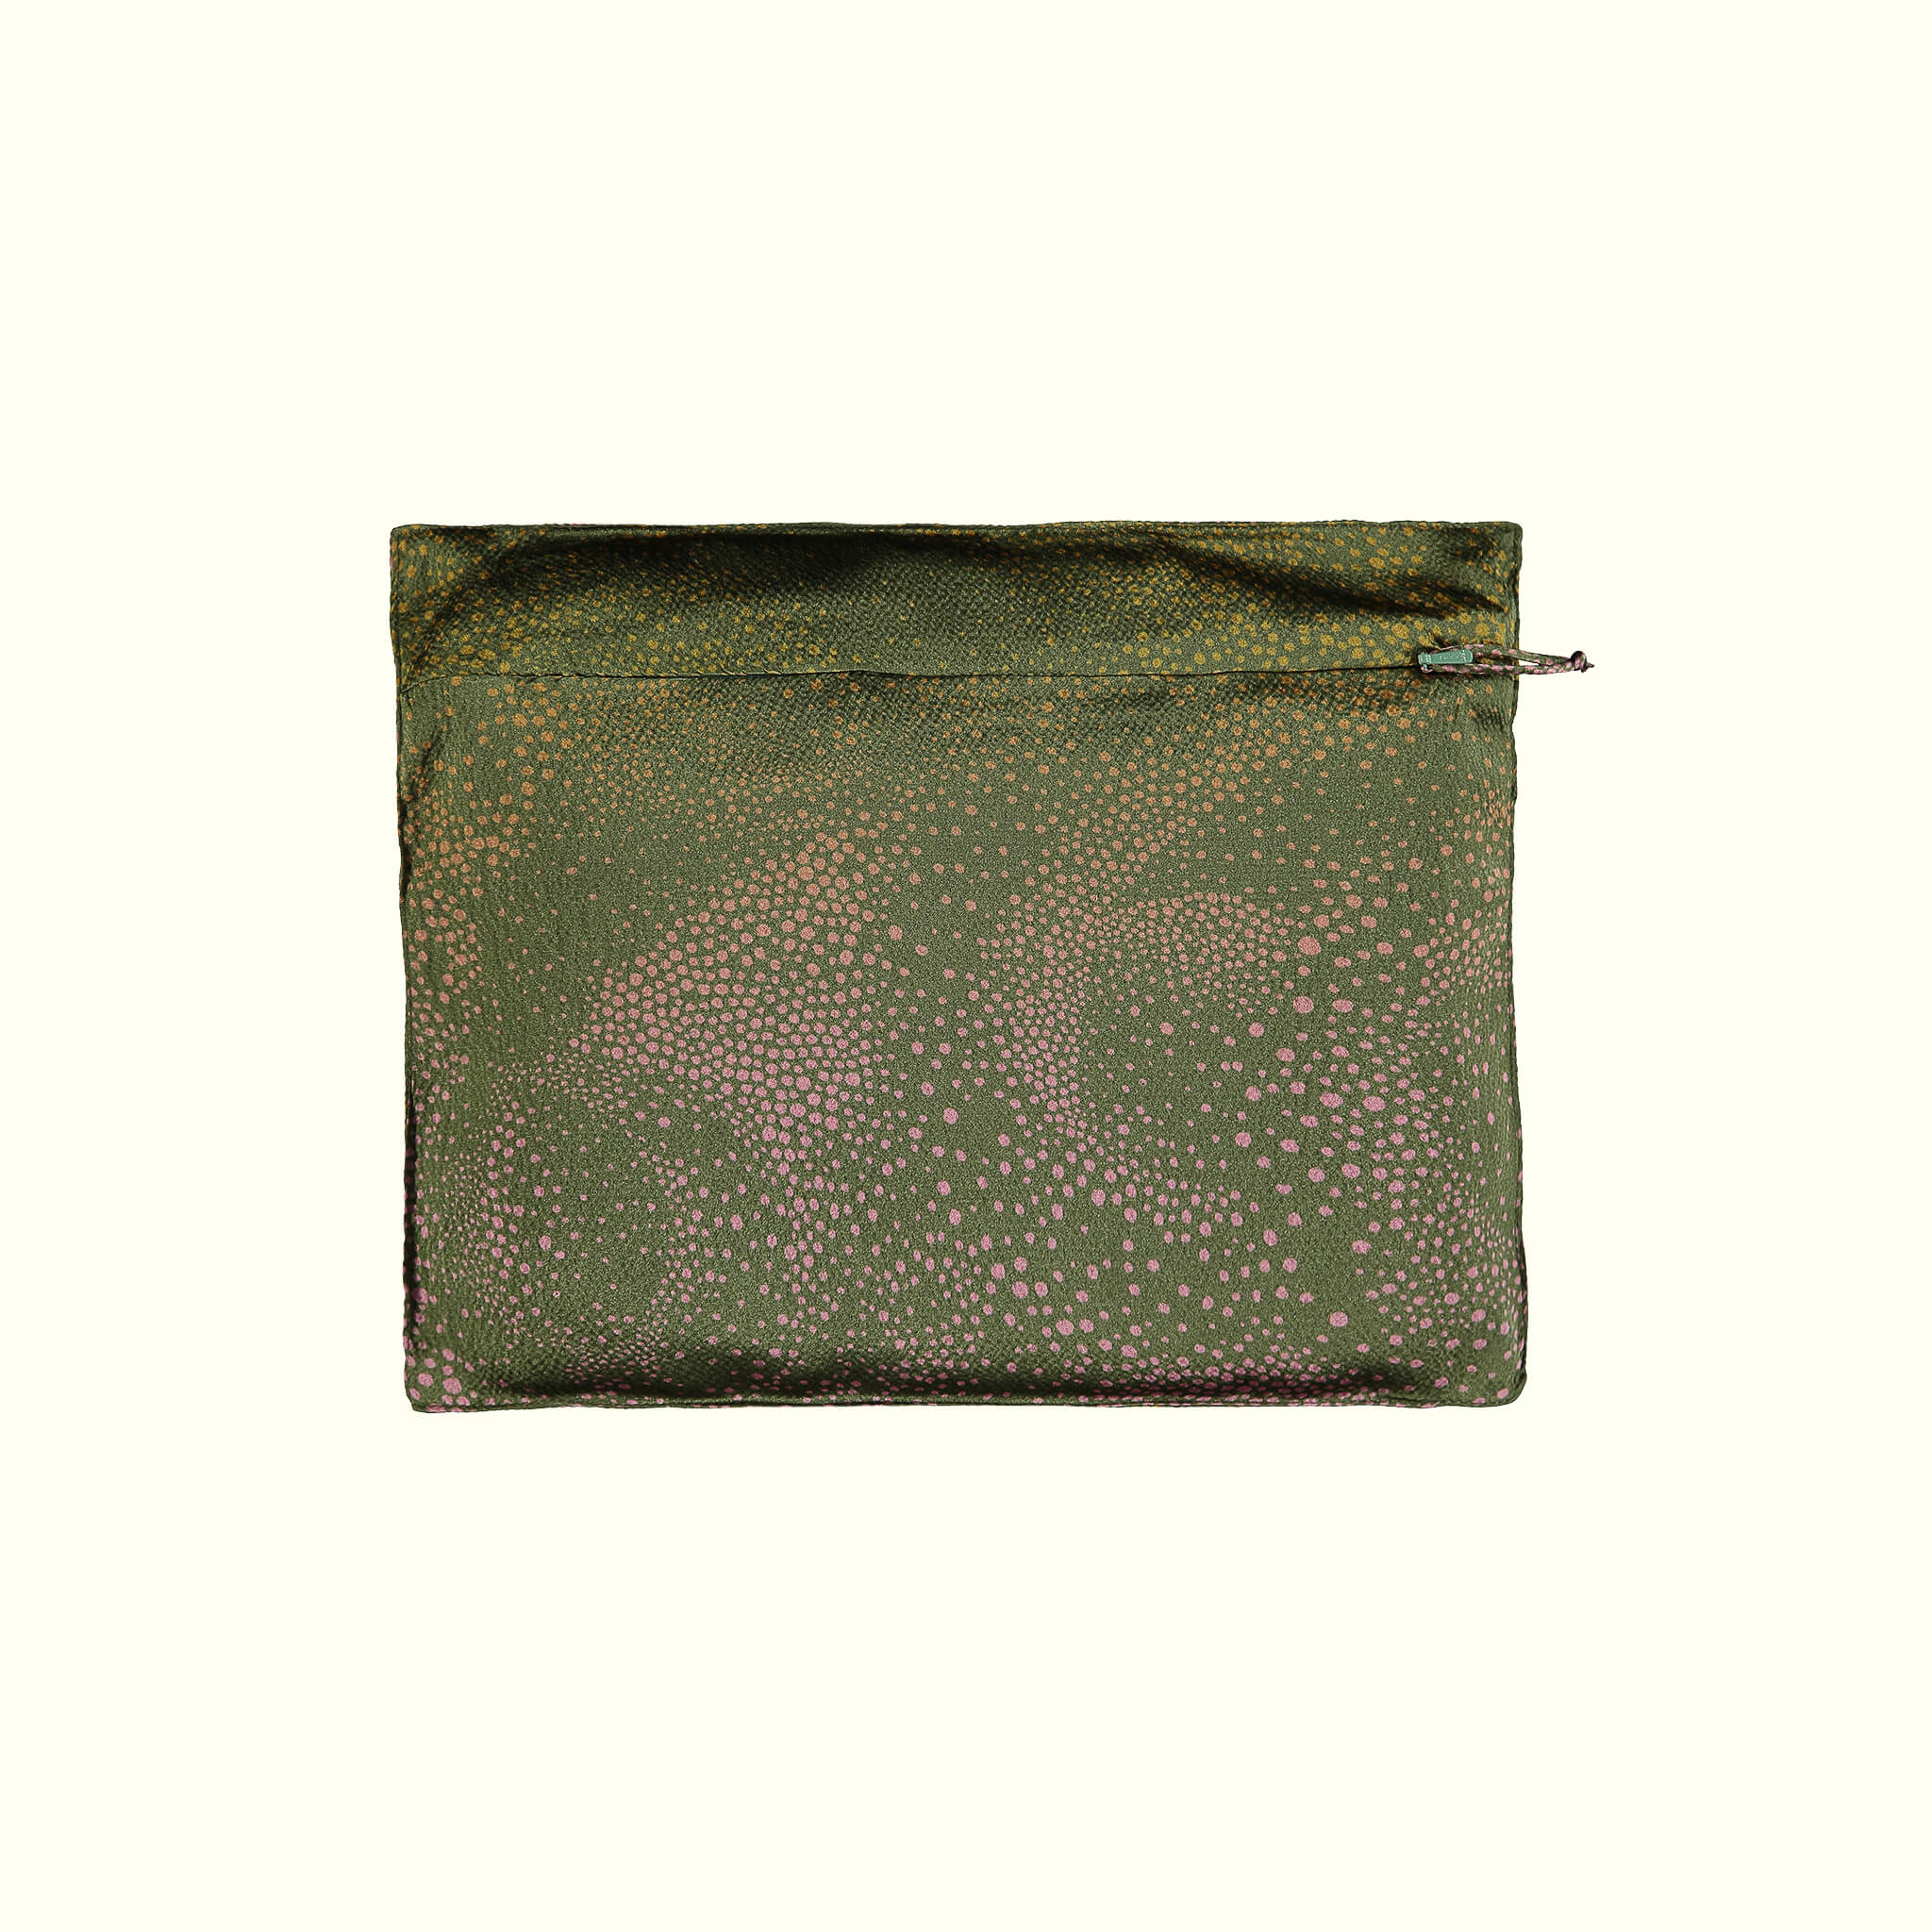 A luxury British silk robe carry bag by GVE in olive and pink Aurora print design.